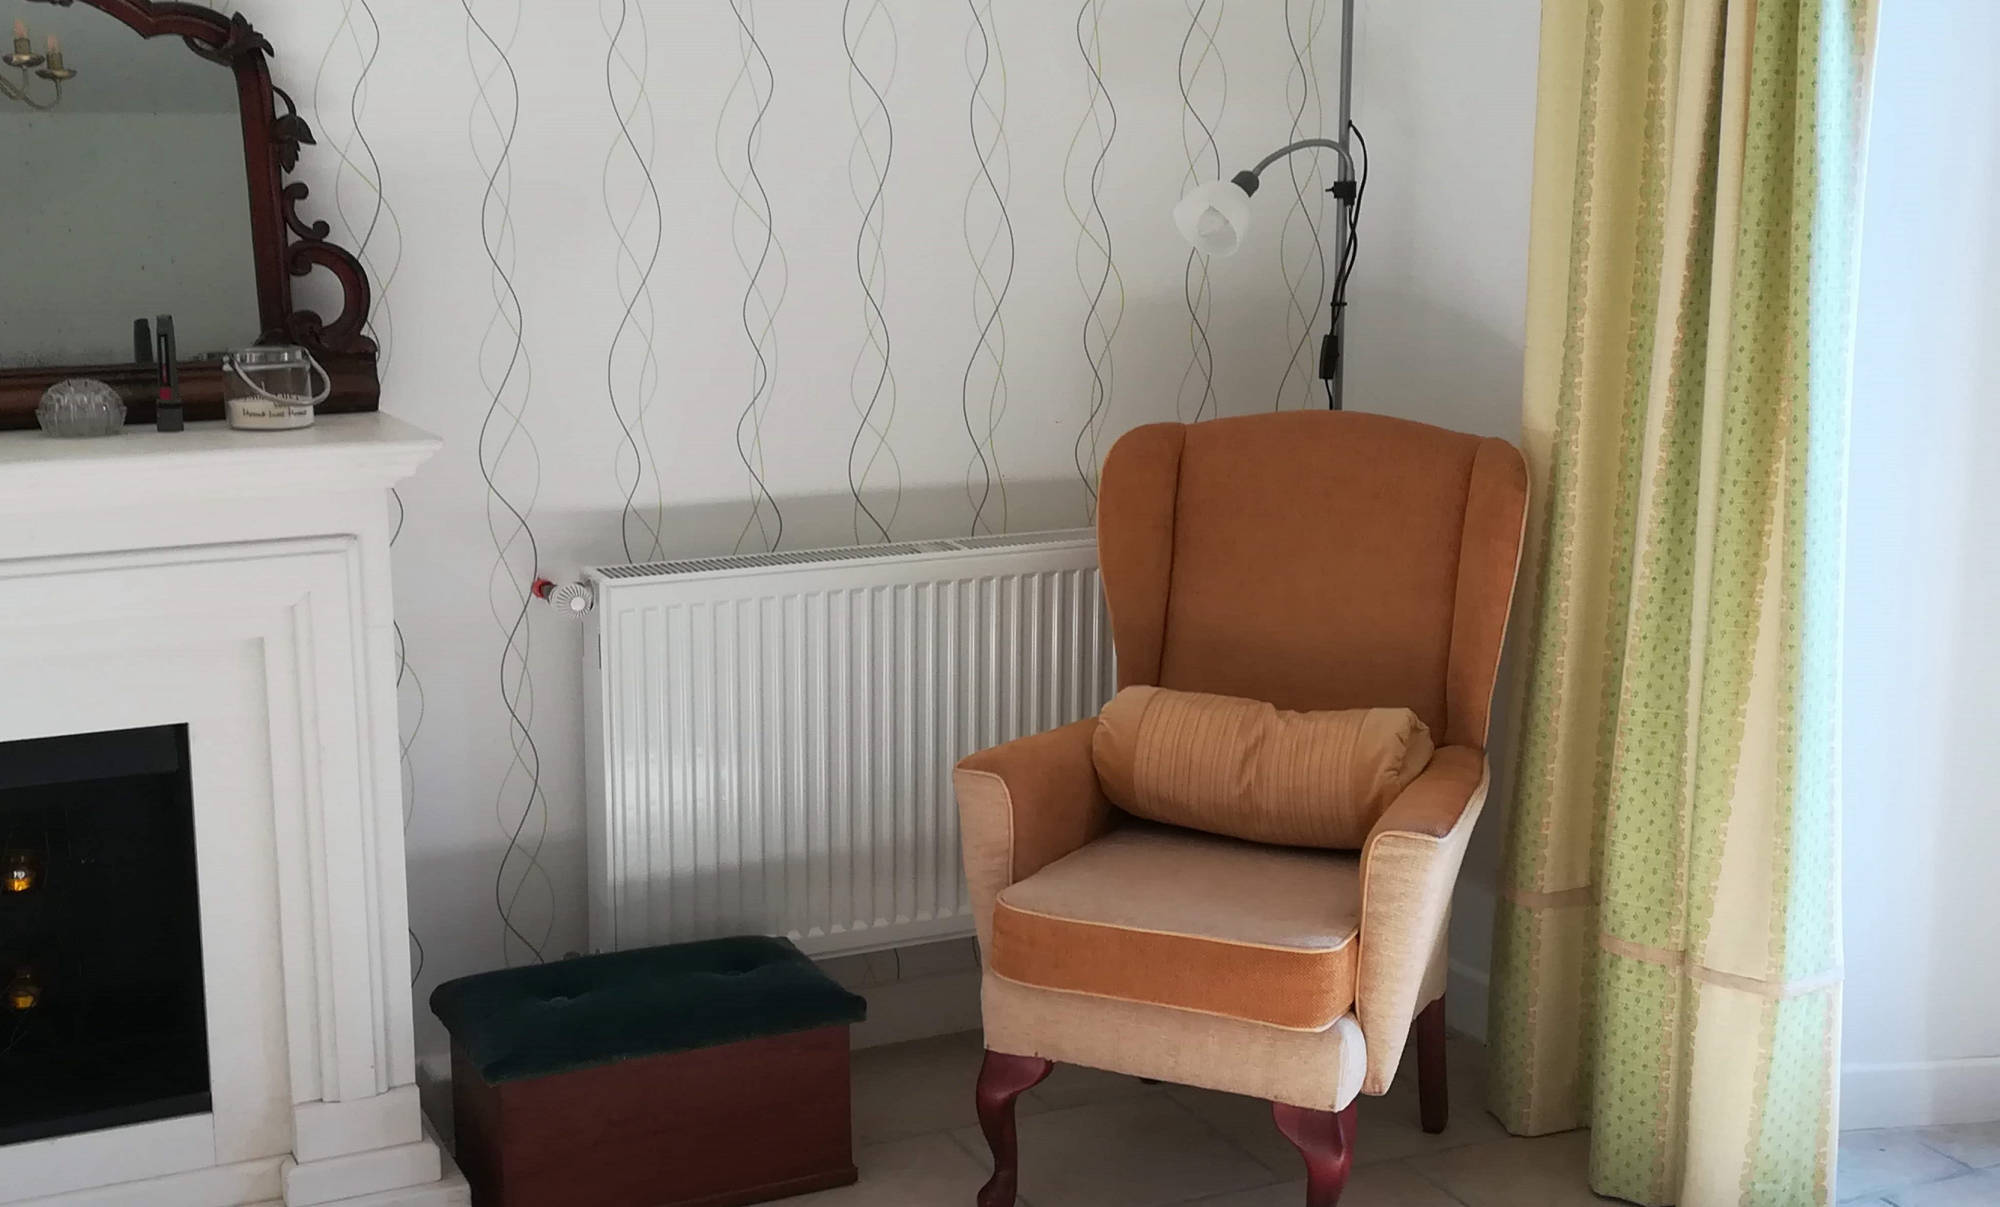 Gite living space, comfy chair